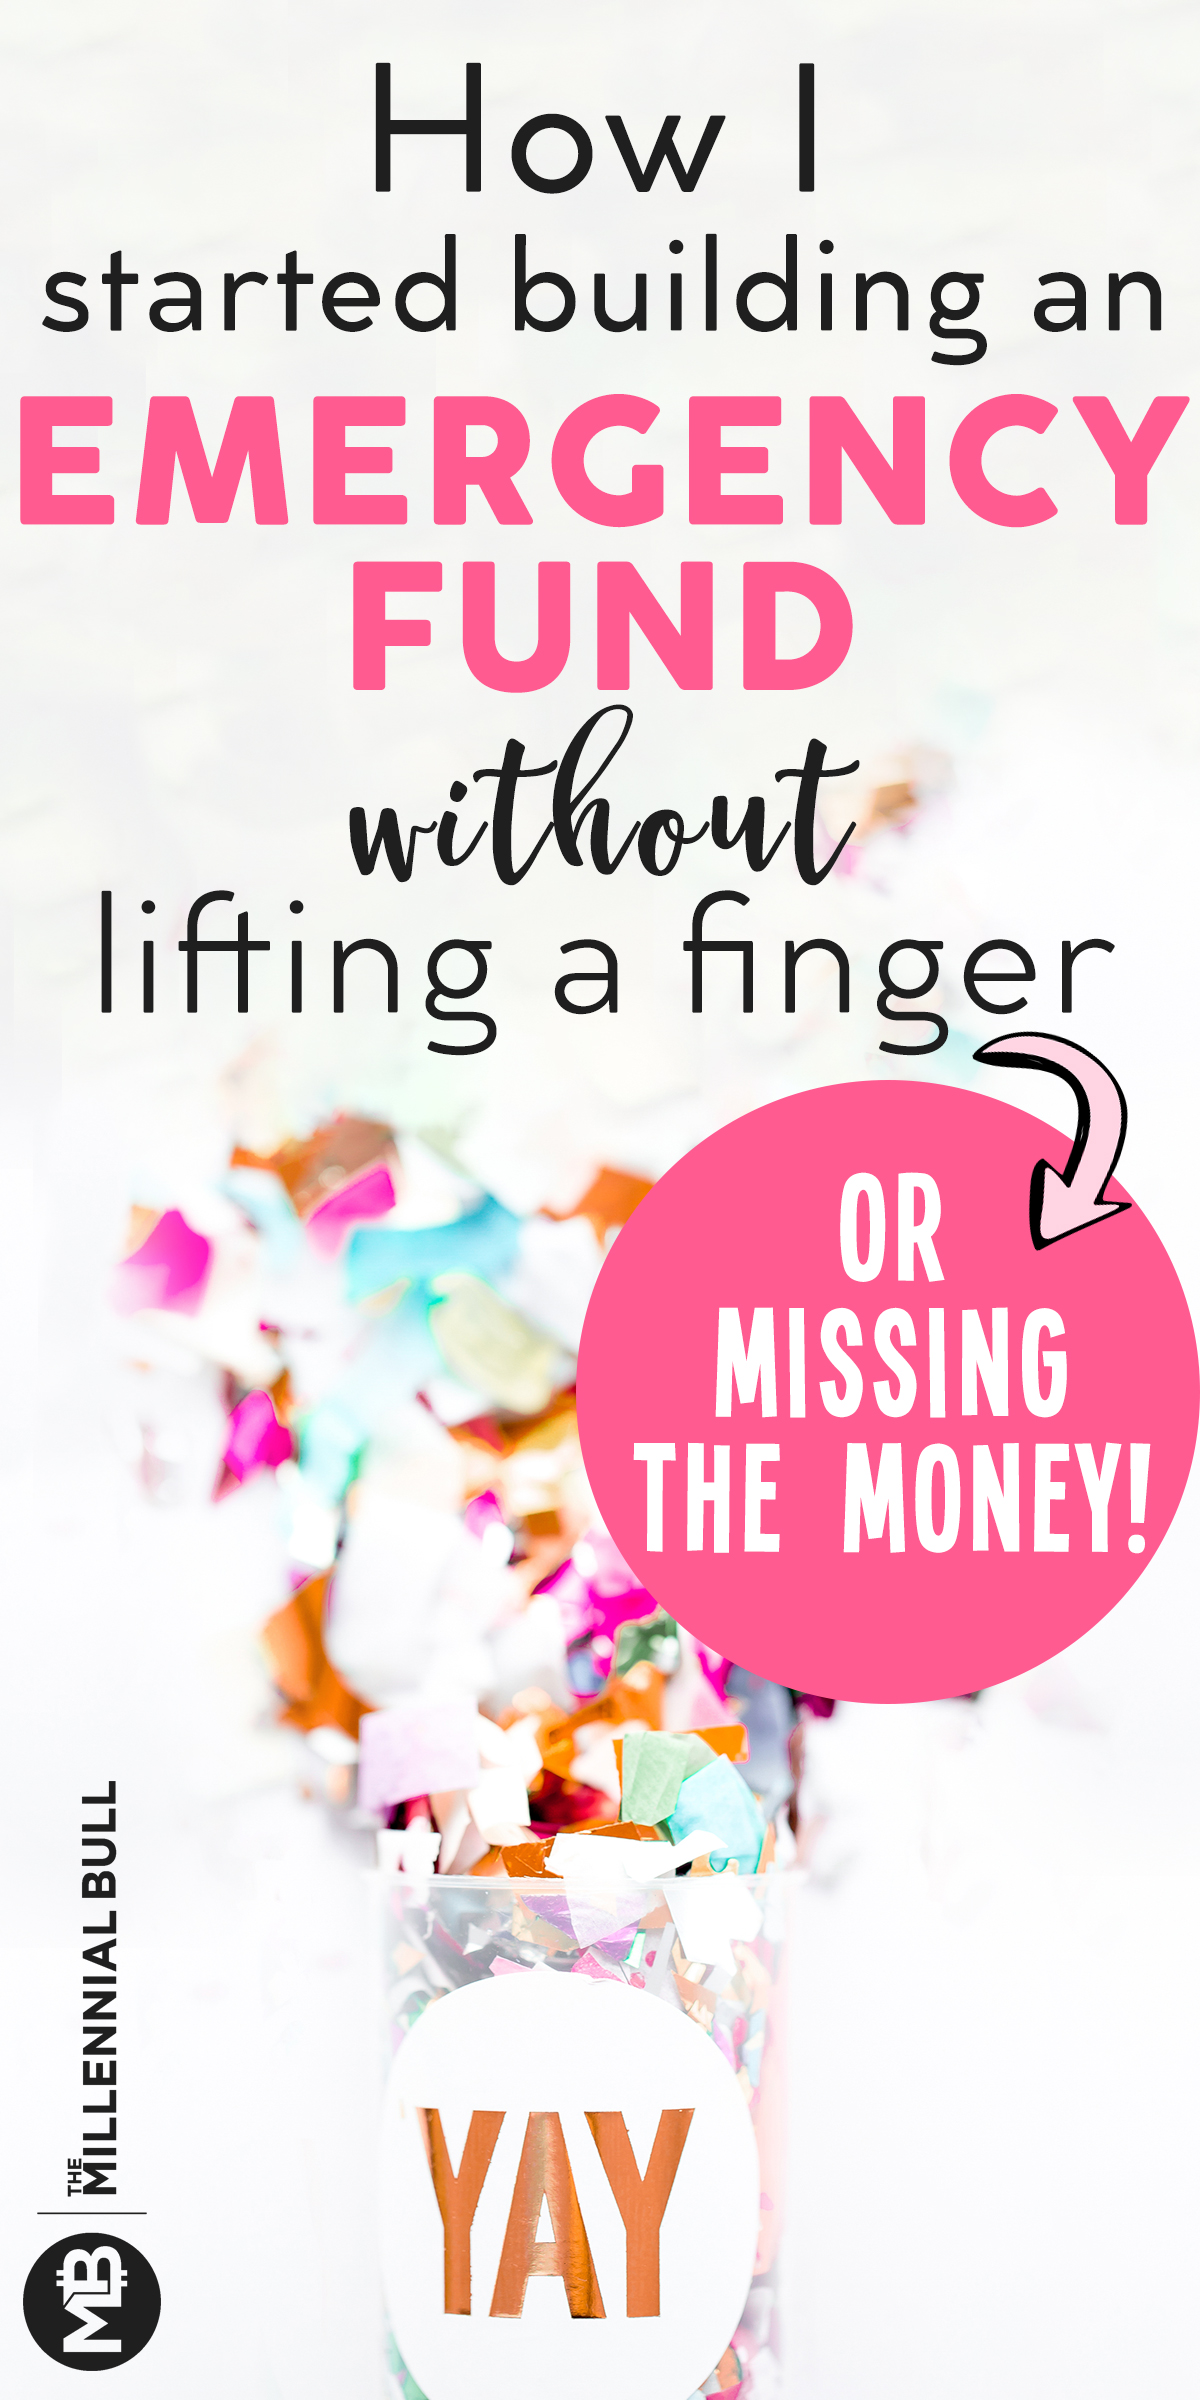 How I started building an emergency fund without lifting a finger, or missing the money! This money saving app has allowed me to save money easily without doing any work. Digit savings app is a power way to save for specific goals so you can get out of debt quickly! #savemoney #digitsavingsapp #moneysavinghacks #personalfinancehacks